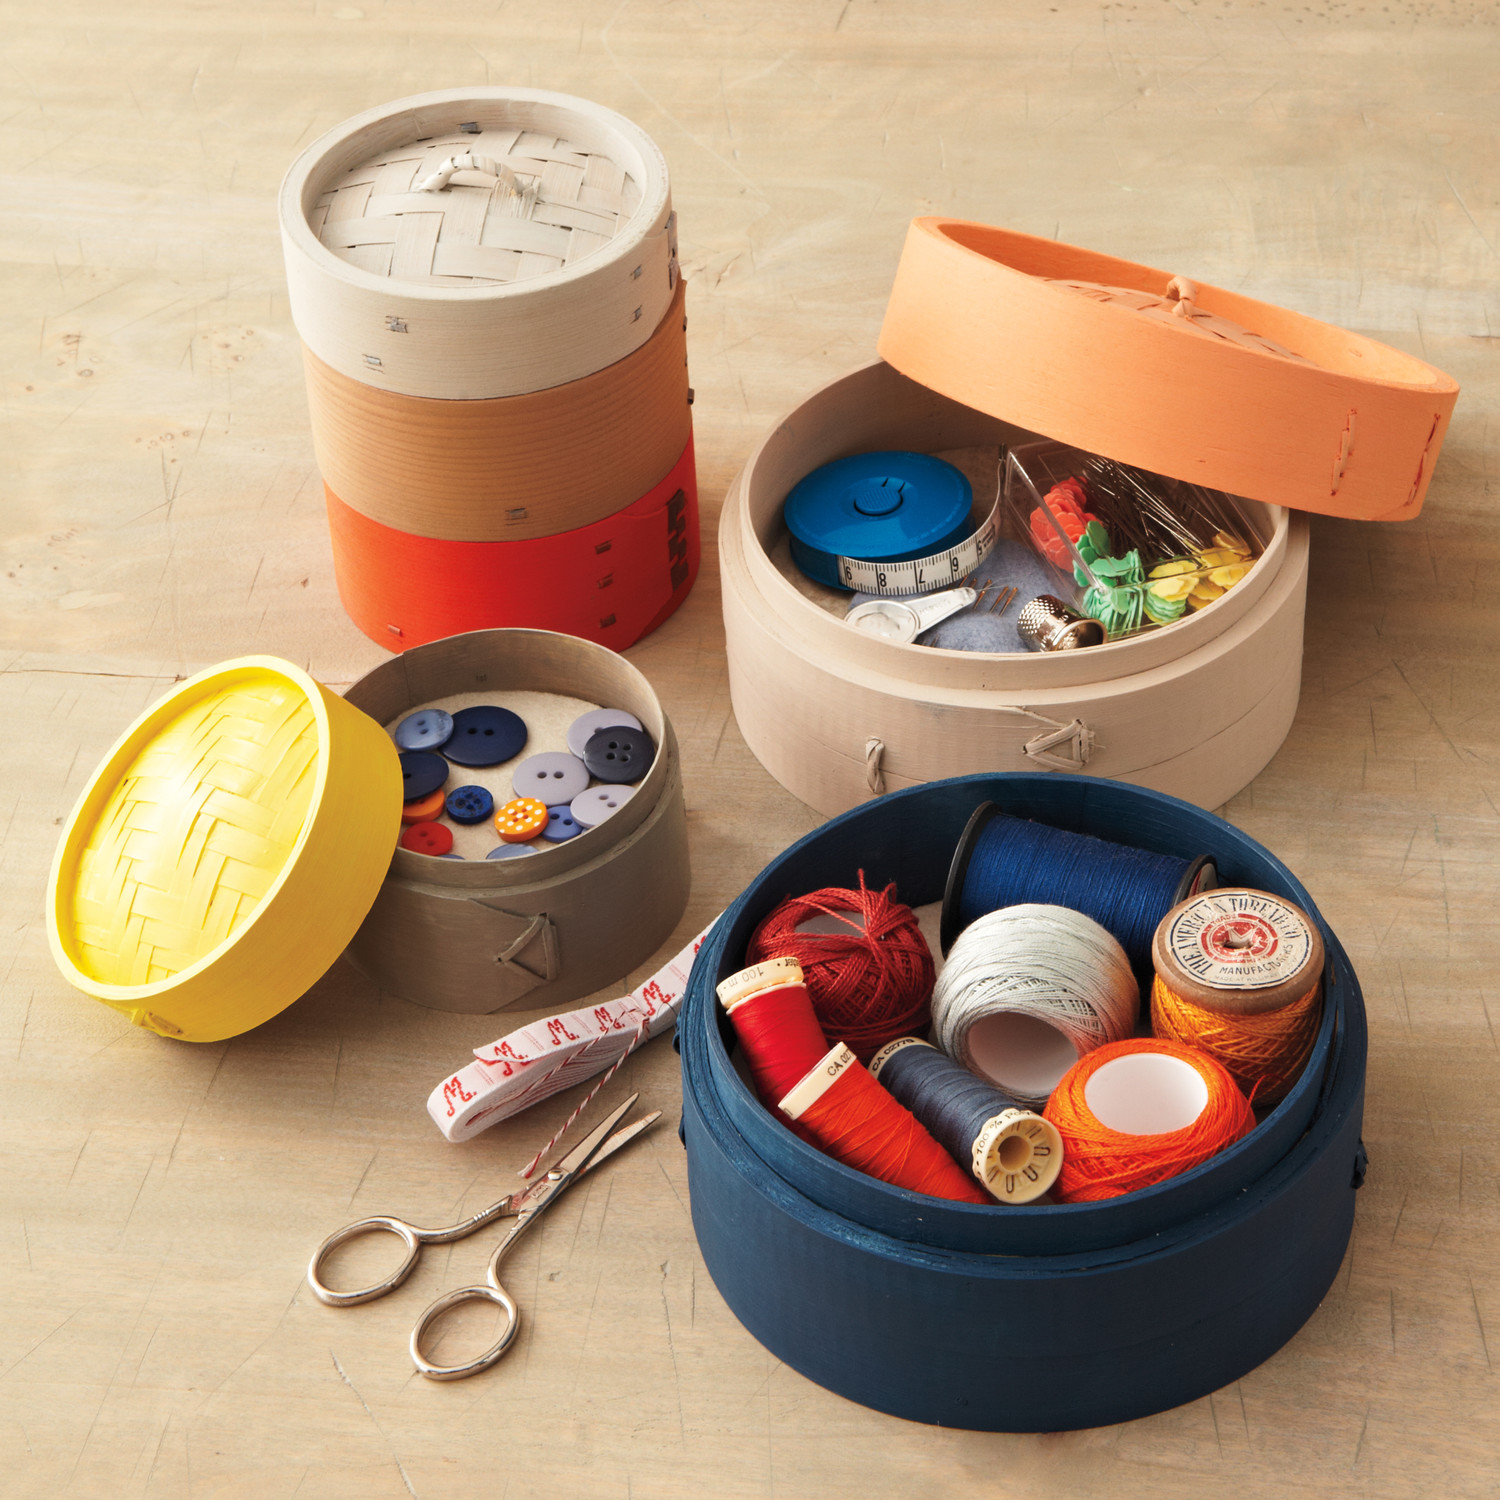 & This Is What the Ultimate Sewing Basket Looks Like | Martha Stewart